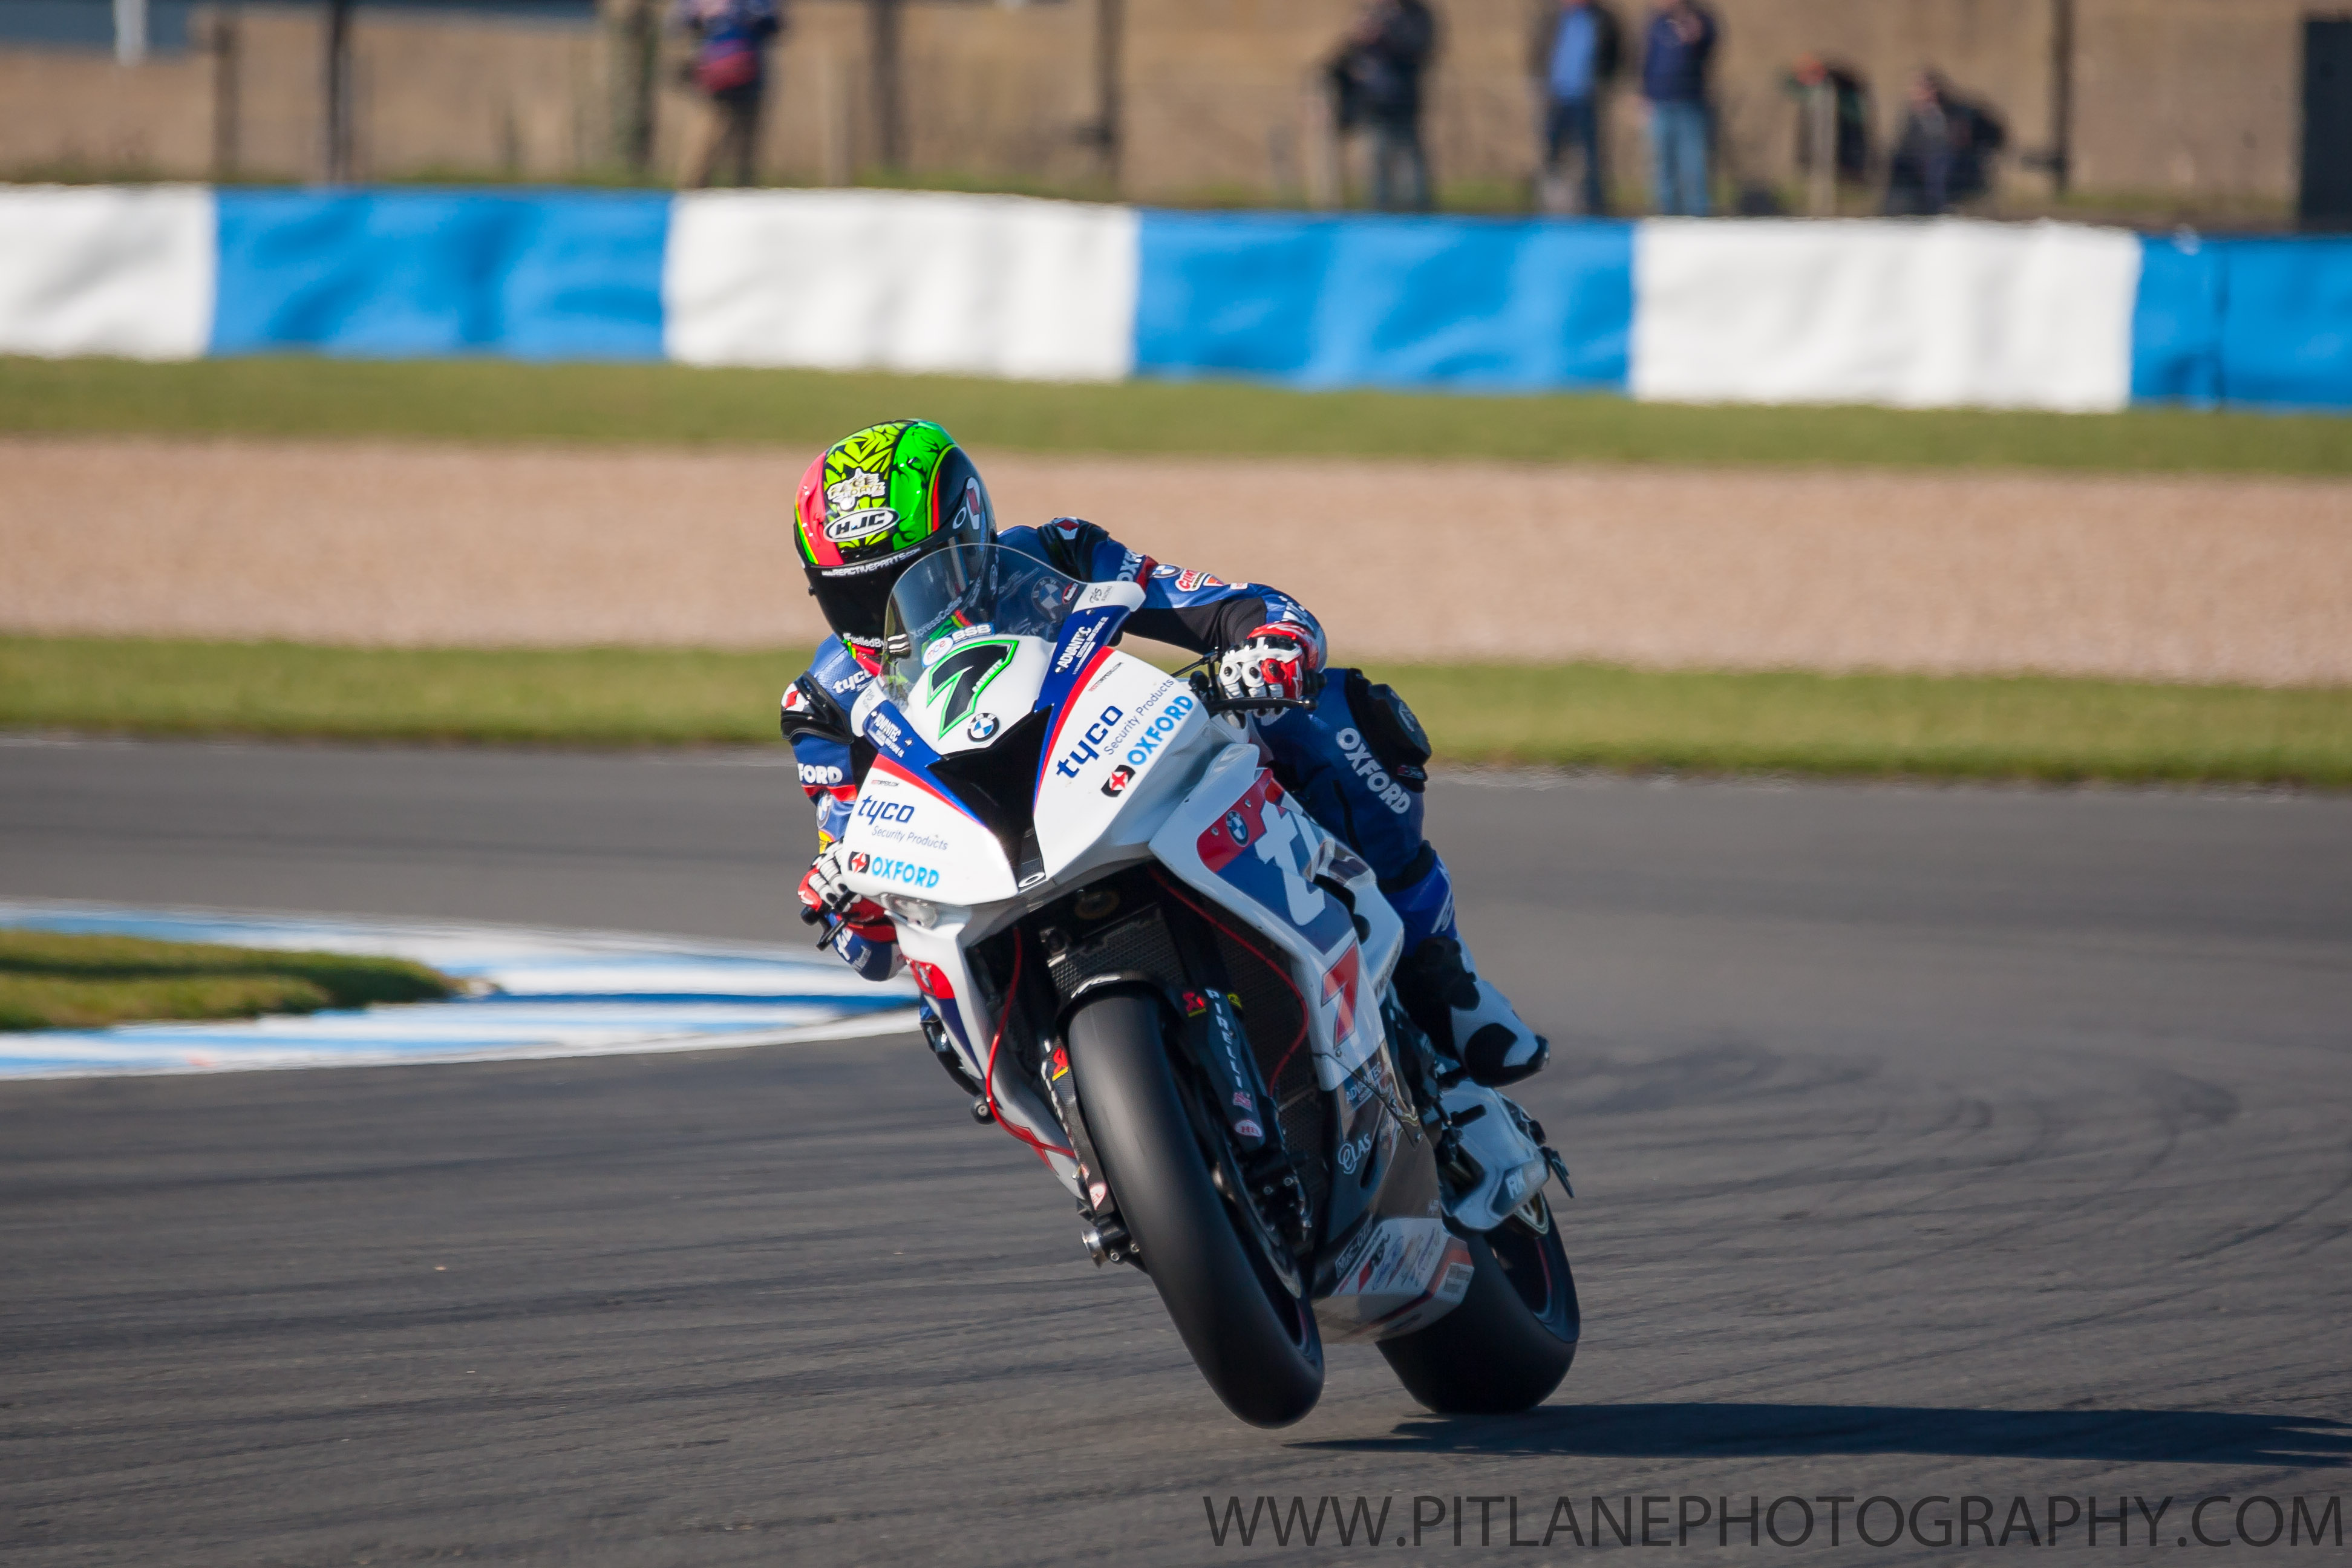 Michael-Laverty-Test-Donington-Park-1